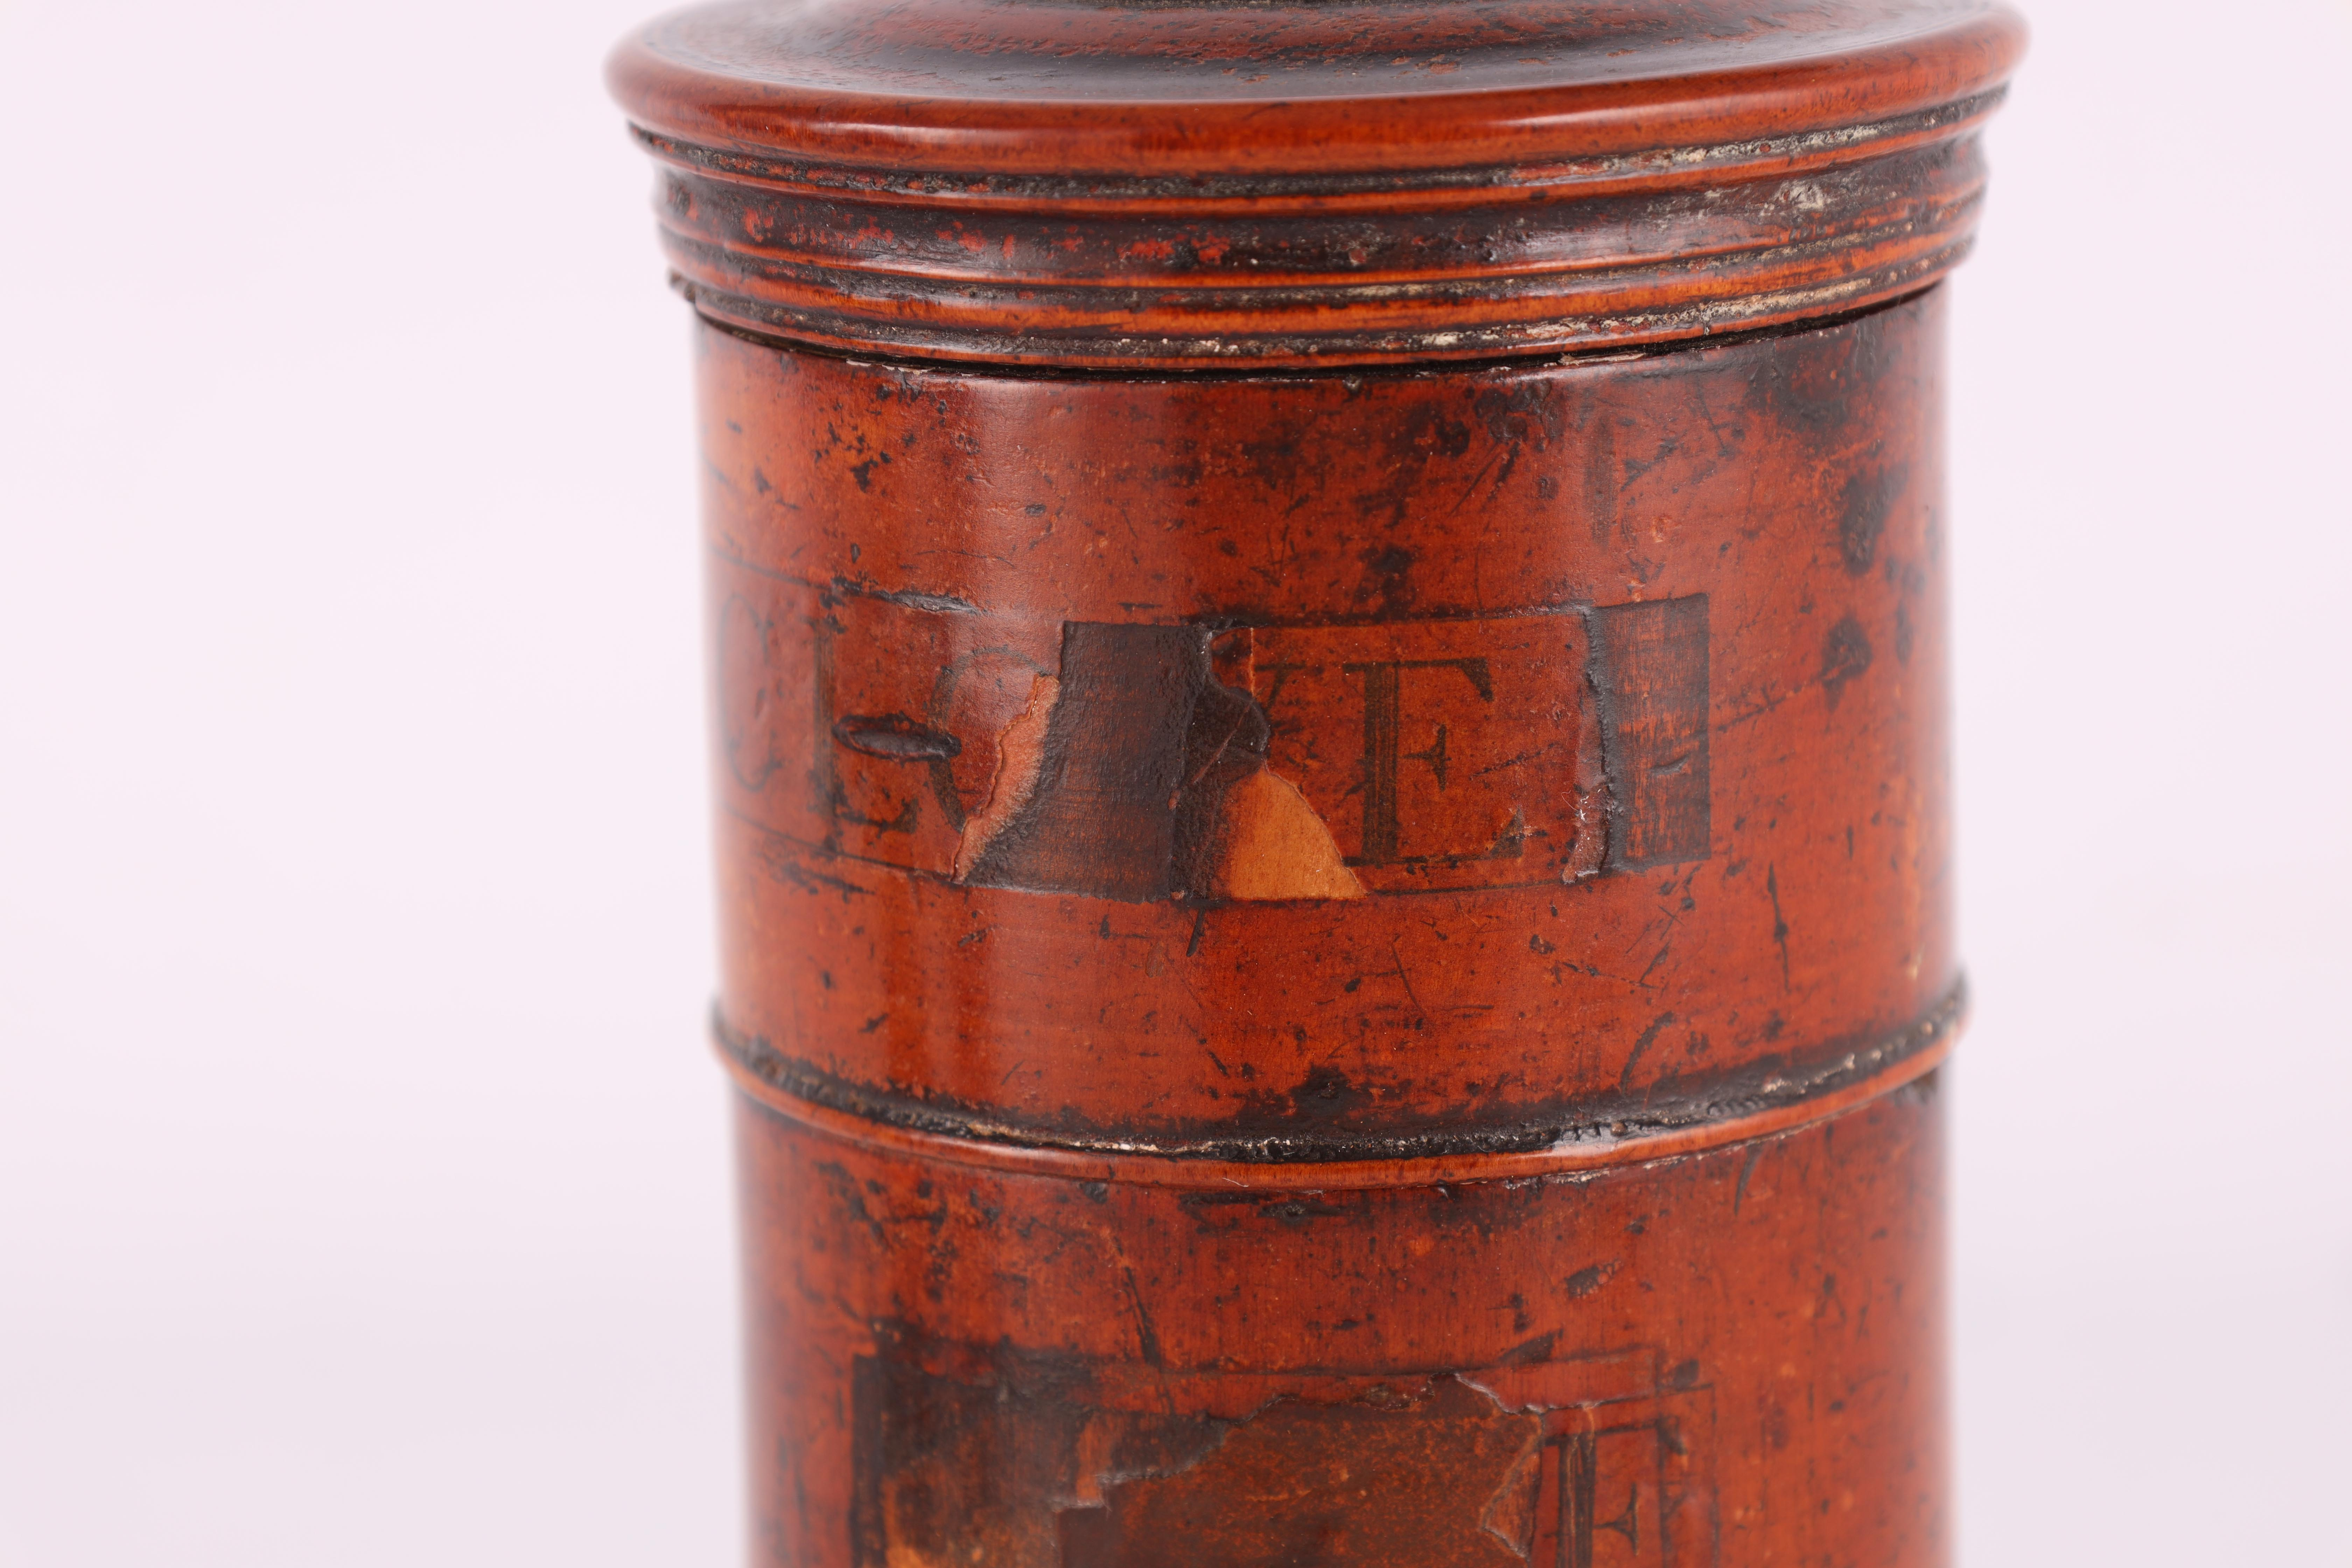 TWO EARLY 19TH CENTURY SYCAMORE TREEN SPICE TOWERS with original labels, the three stack 15cm - Image 4 of 13